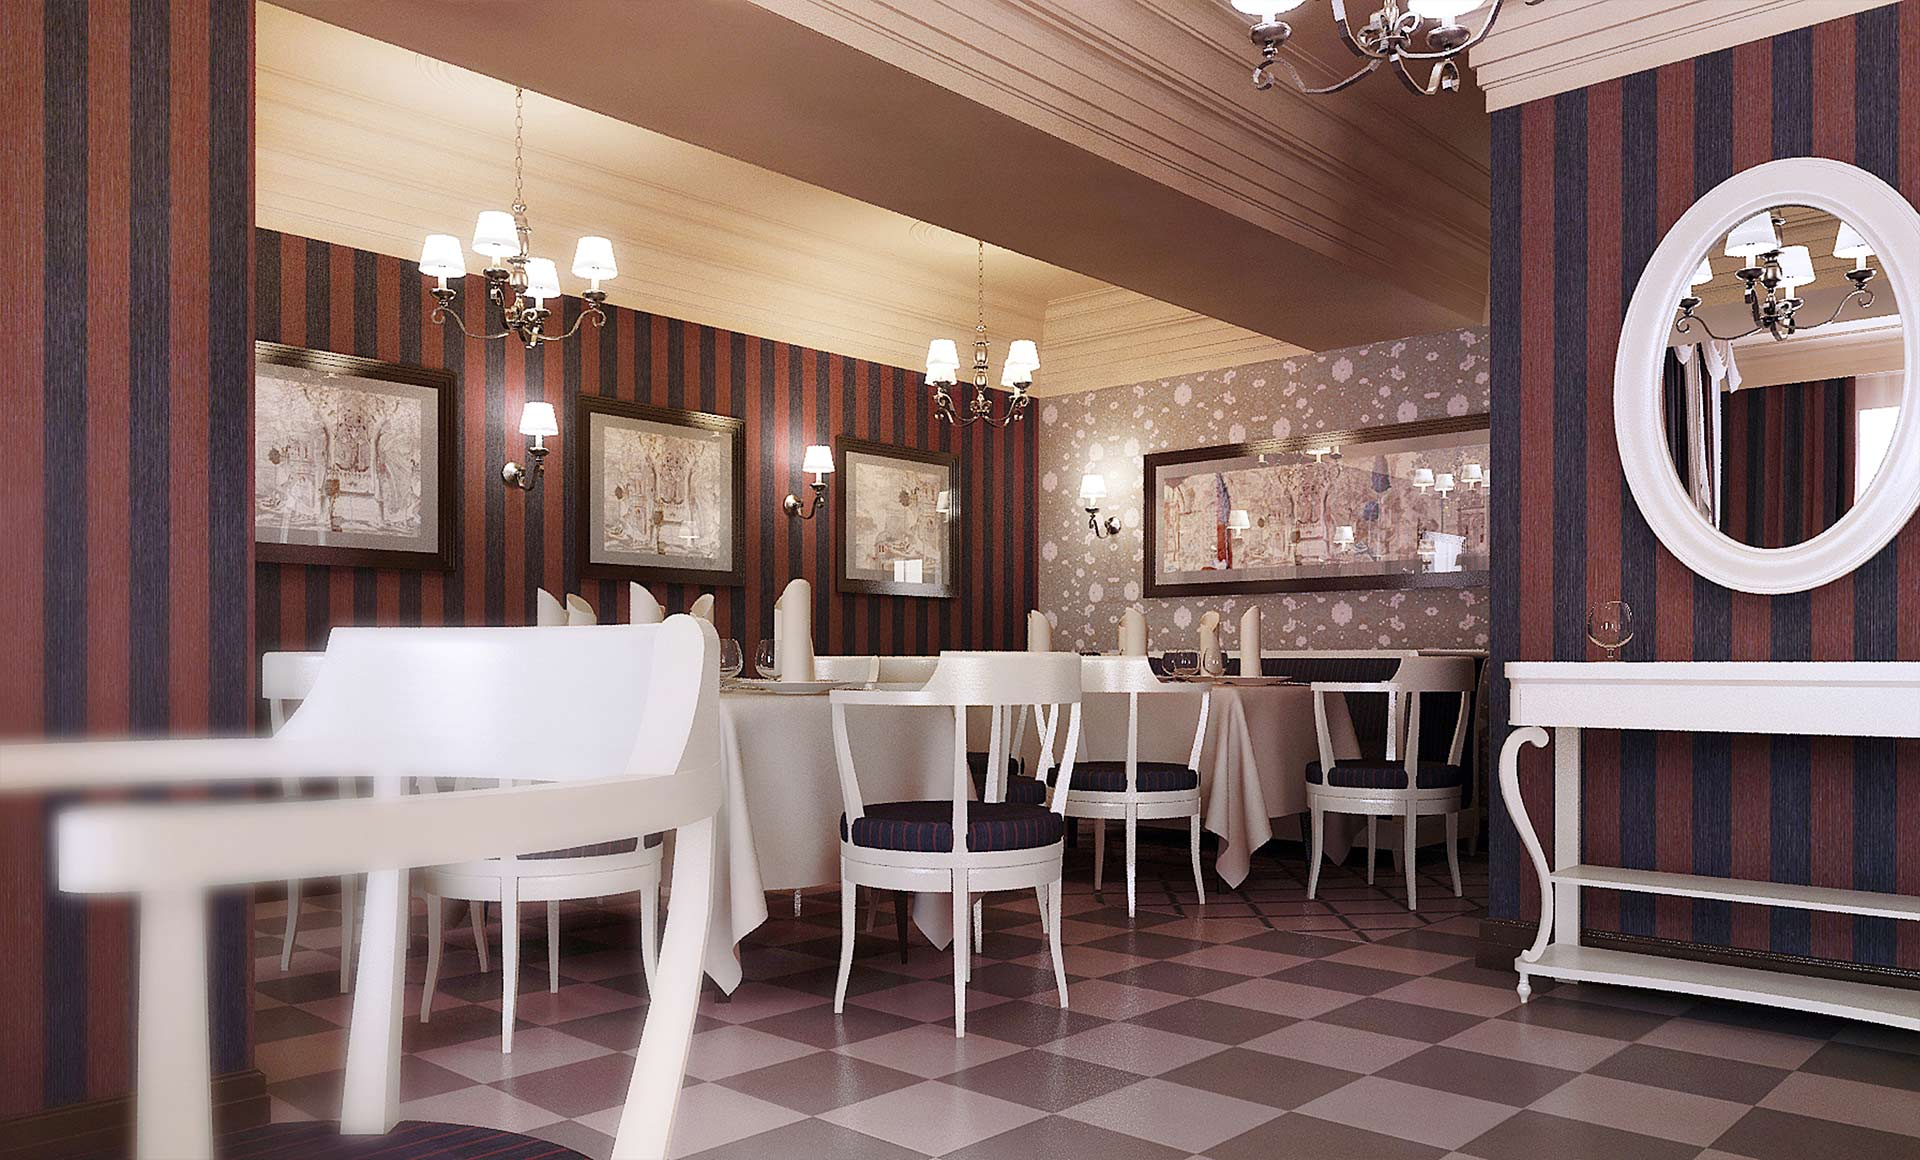 Restaurant Designs Hospitality Designsdesign As It Should Bevanguard Development.